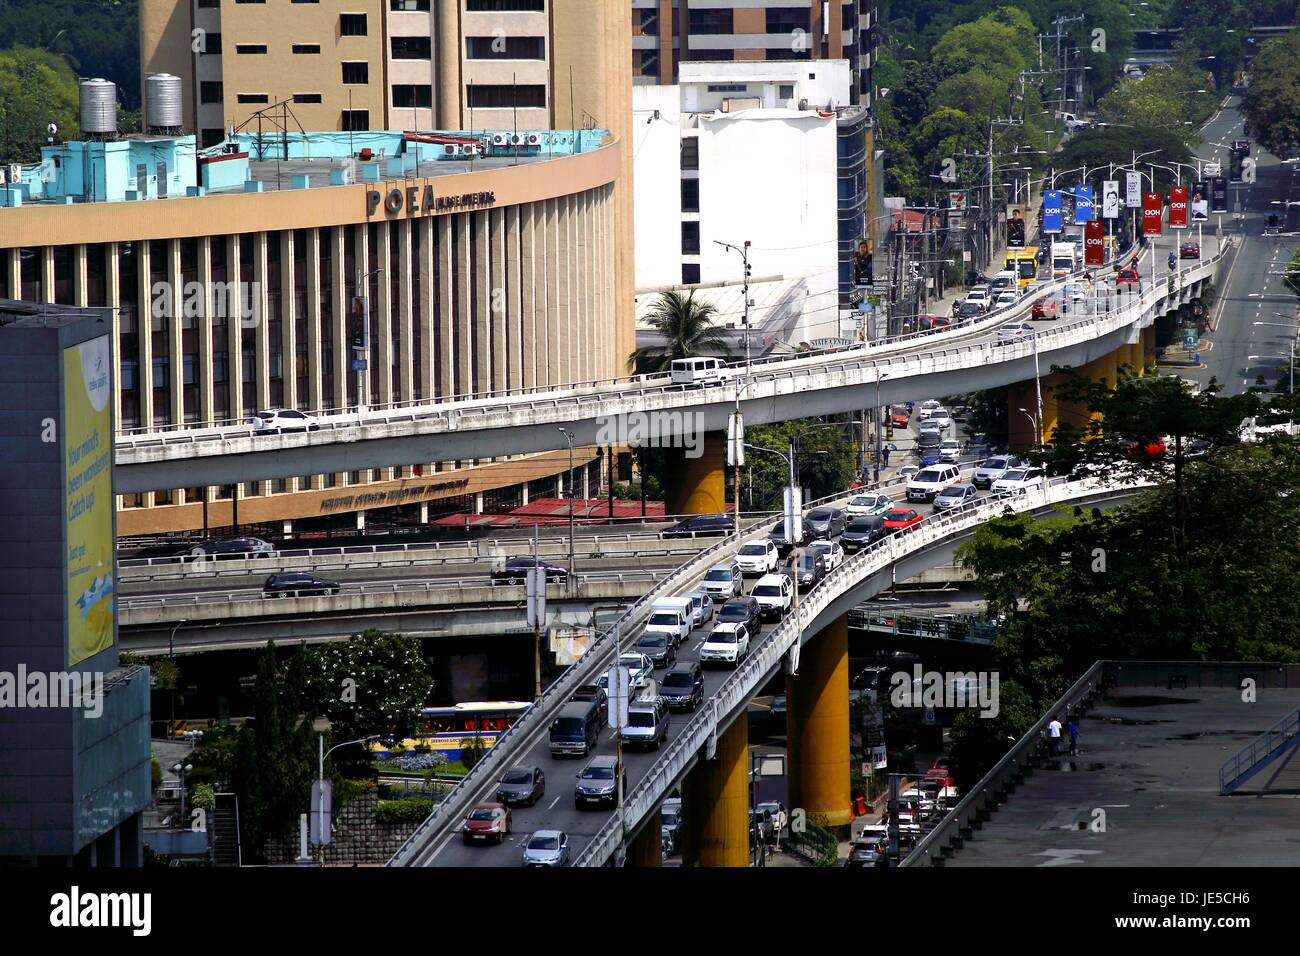 QUEZON CITY, PHILIPPINES - JUNE 15, 2017: Flyovers at the intersection of Ortigas Avenue and Epifanio Delos Santos - Stock Image